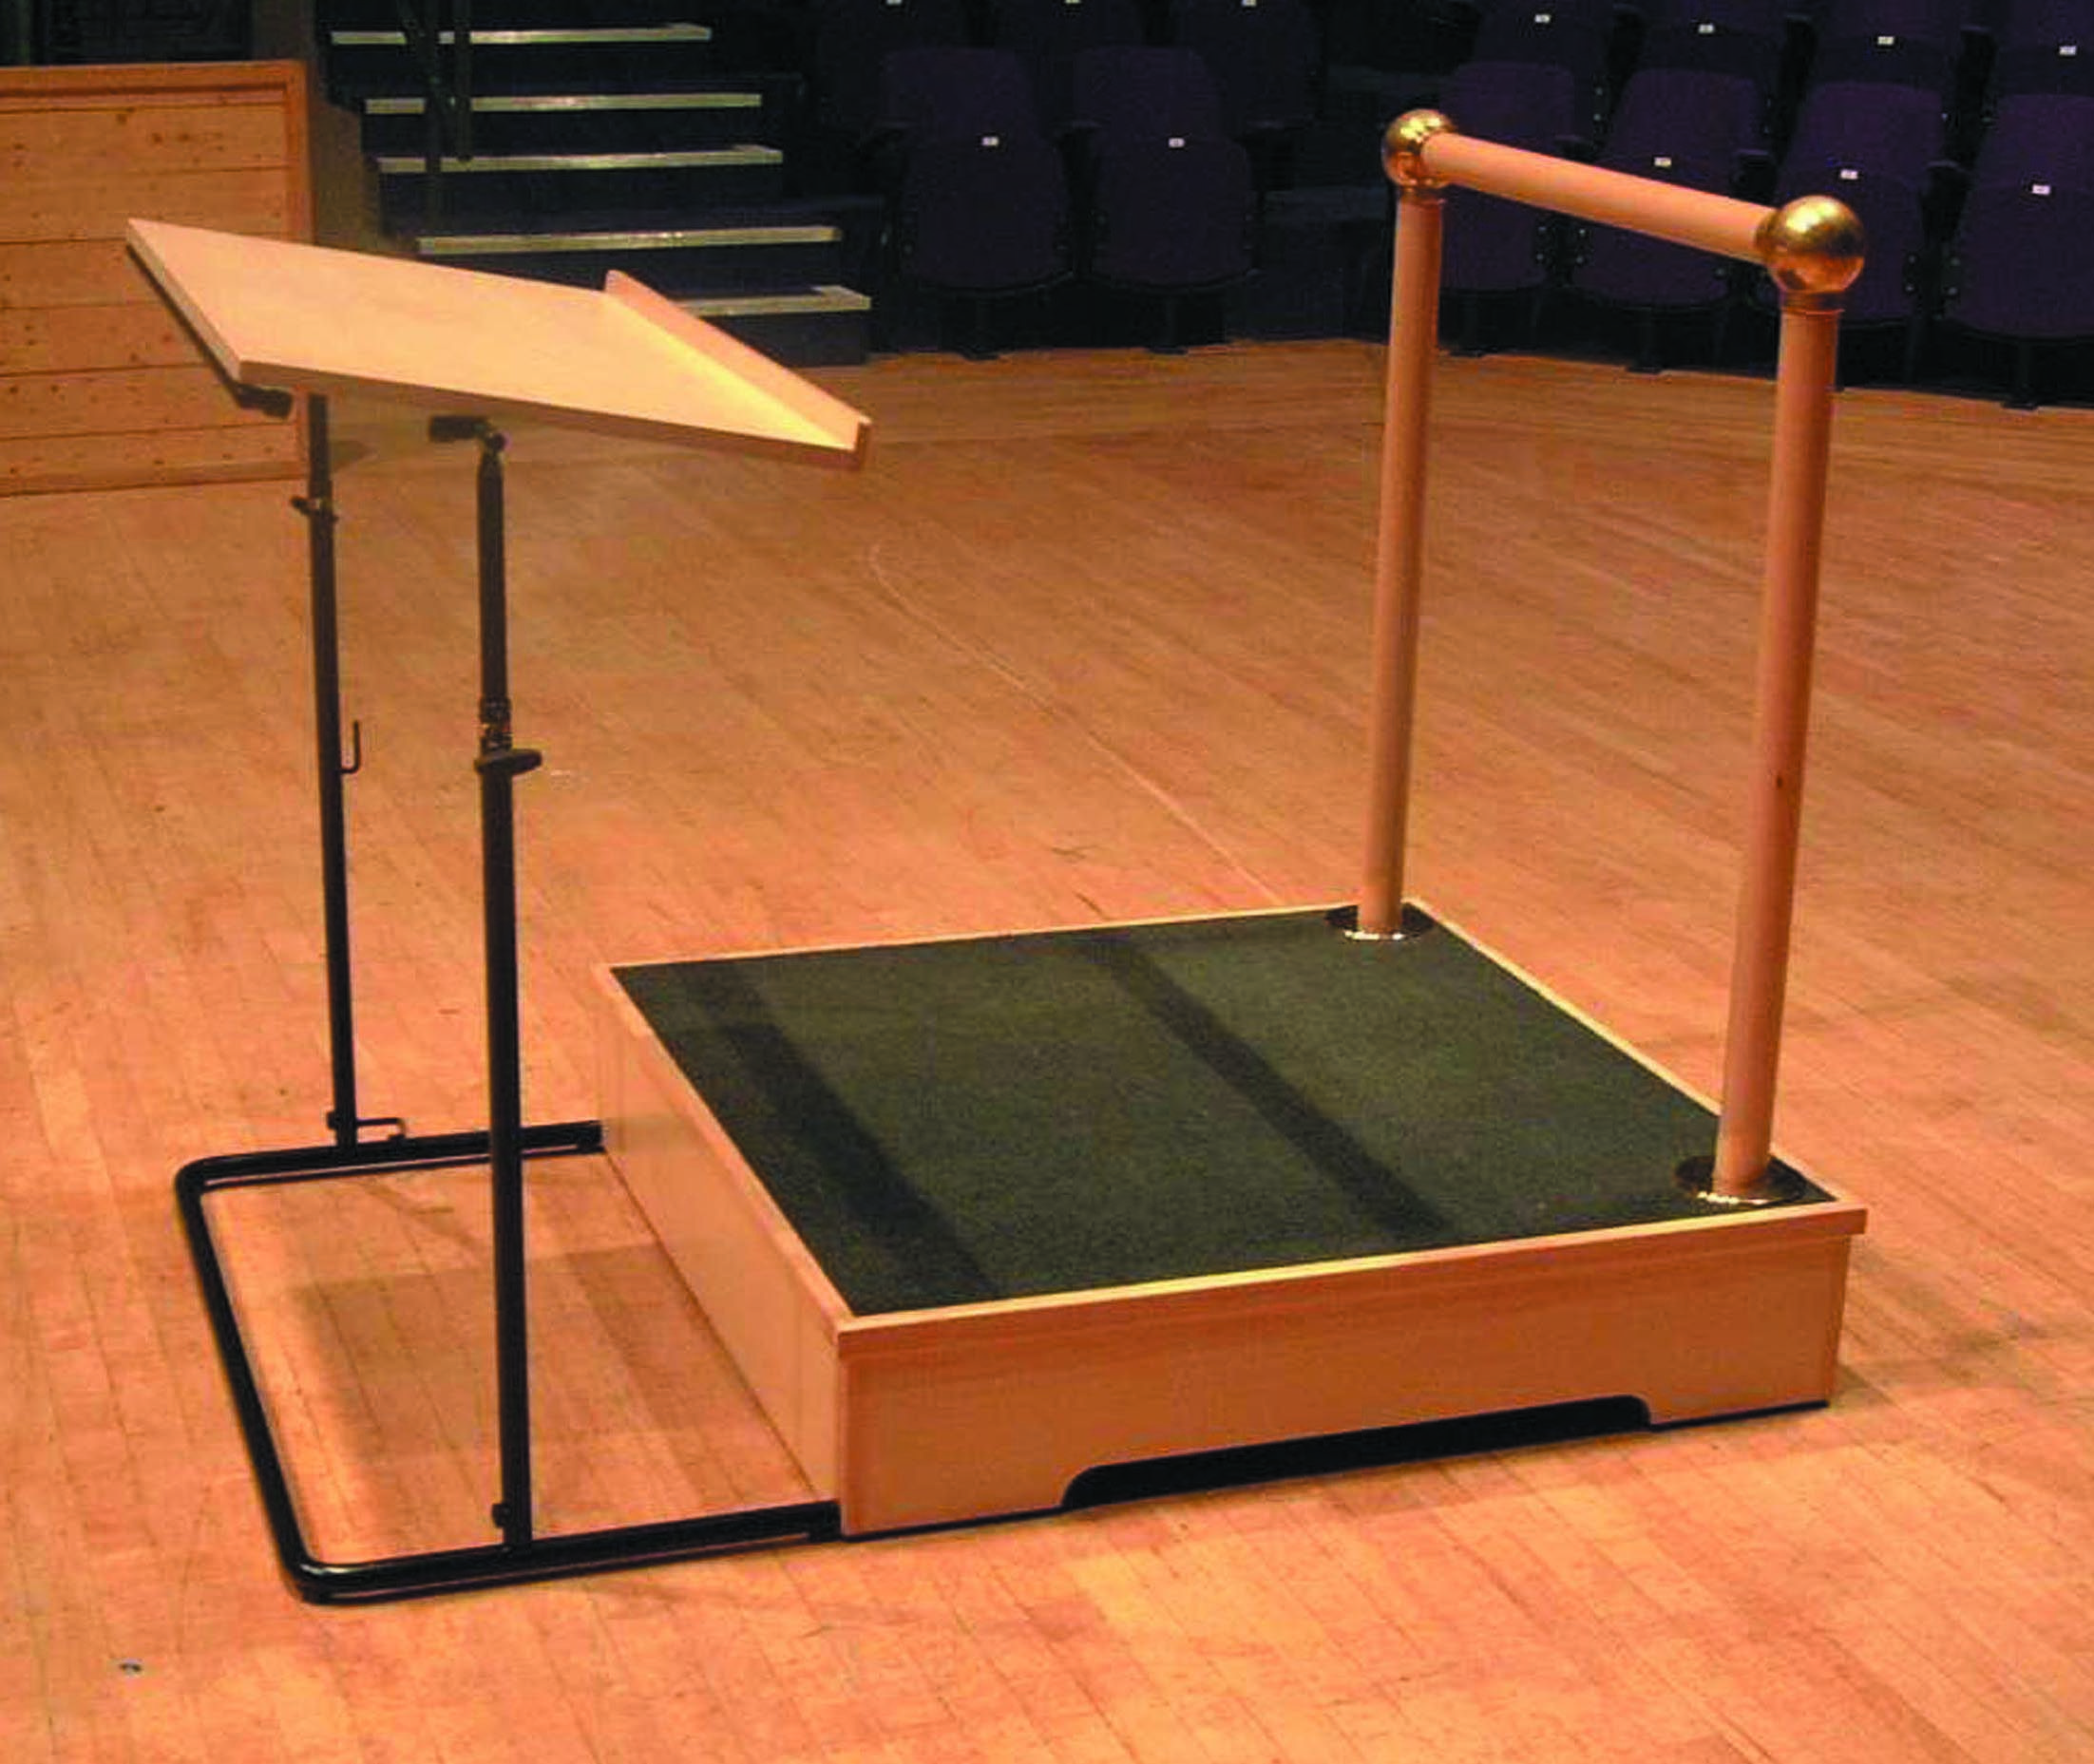 How to make a conductor furniture yourself